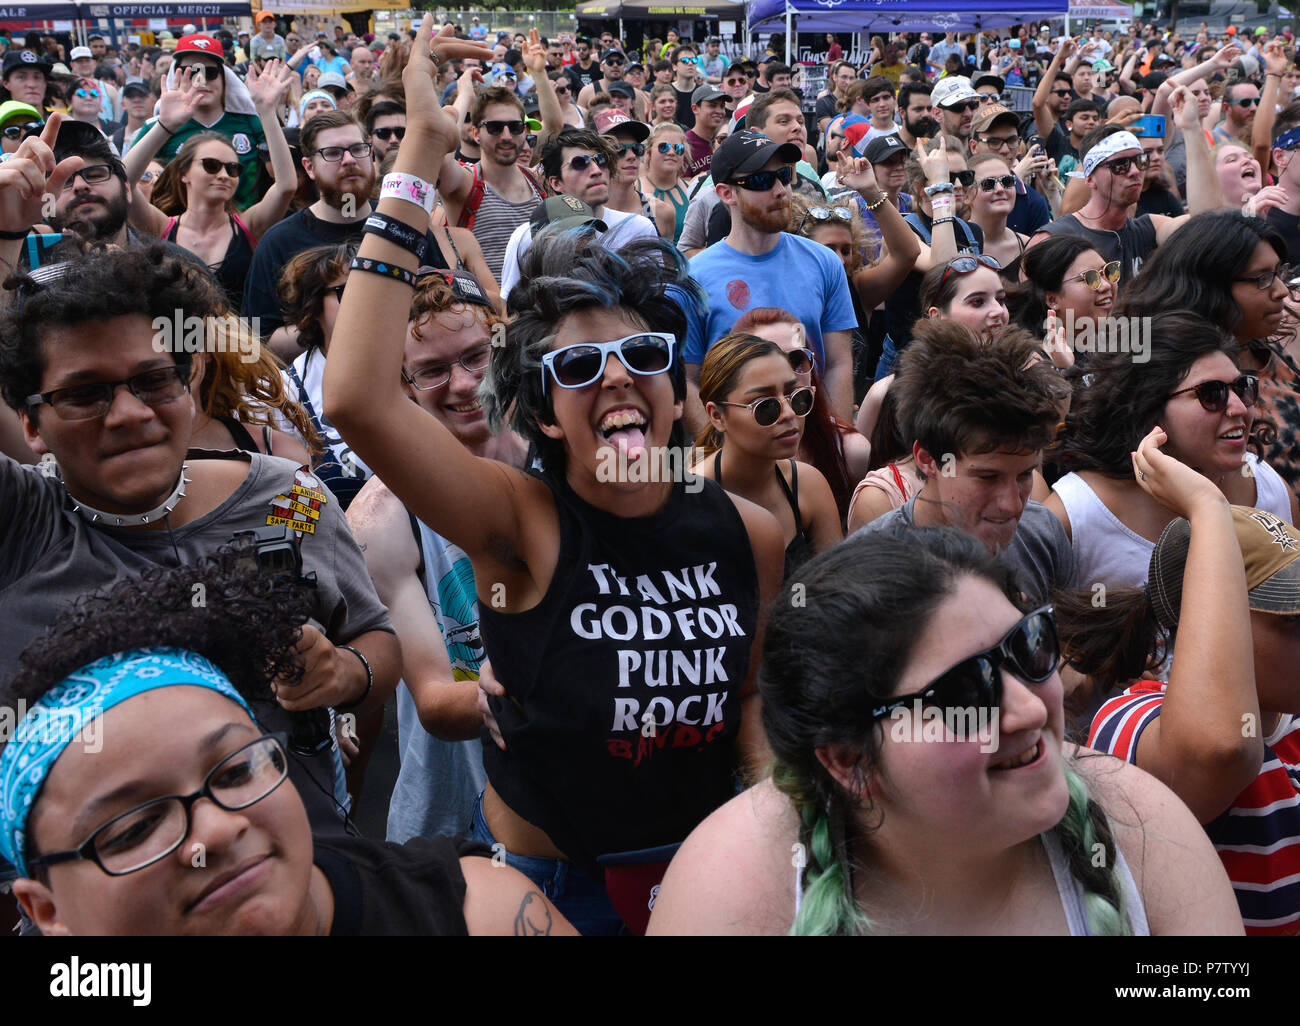 San Antonio, USA. 7th July 2018. Fans cheer during the Vans Warped Tour June 7, 2018 in San Antonio, Texas. Credit: Robin Jerstad/Alamy Live News - Stock Image